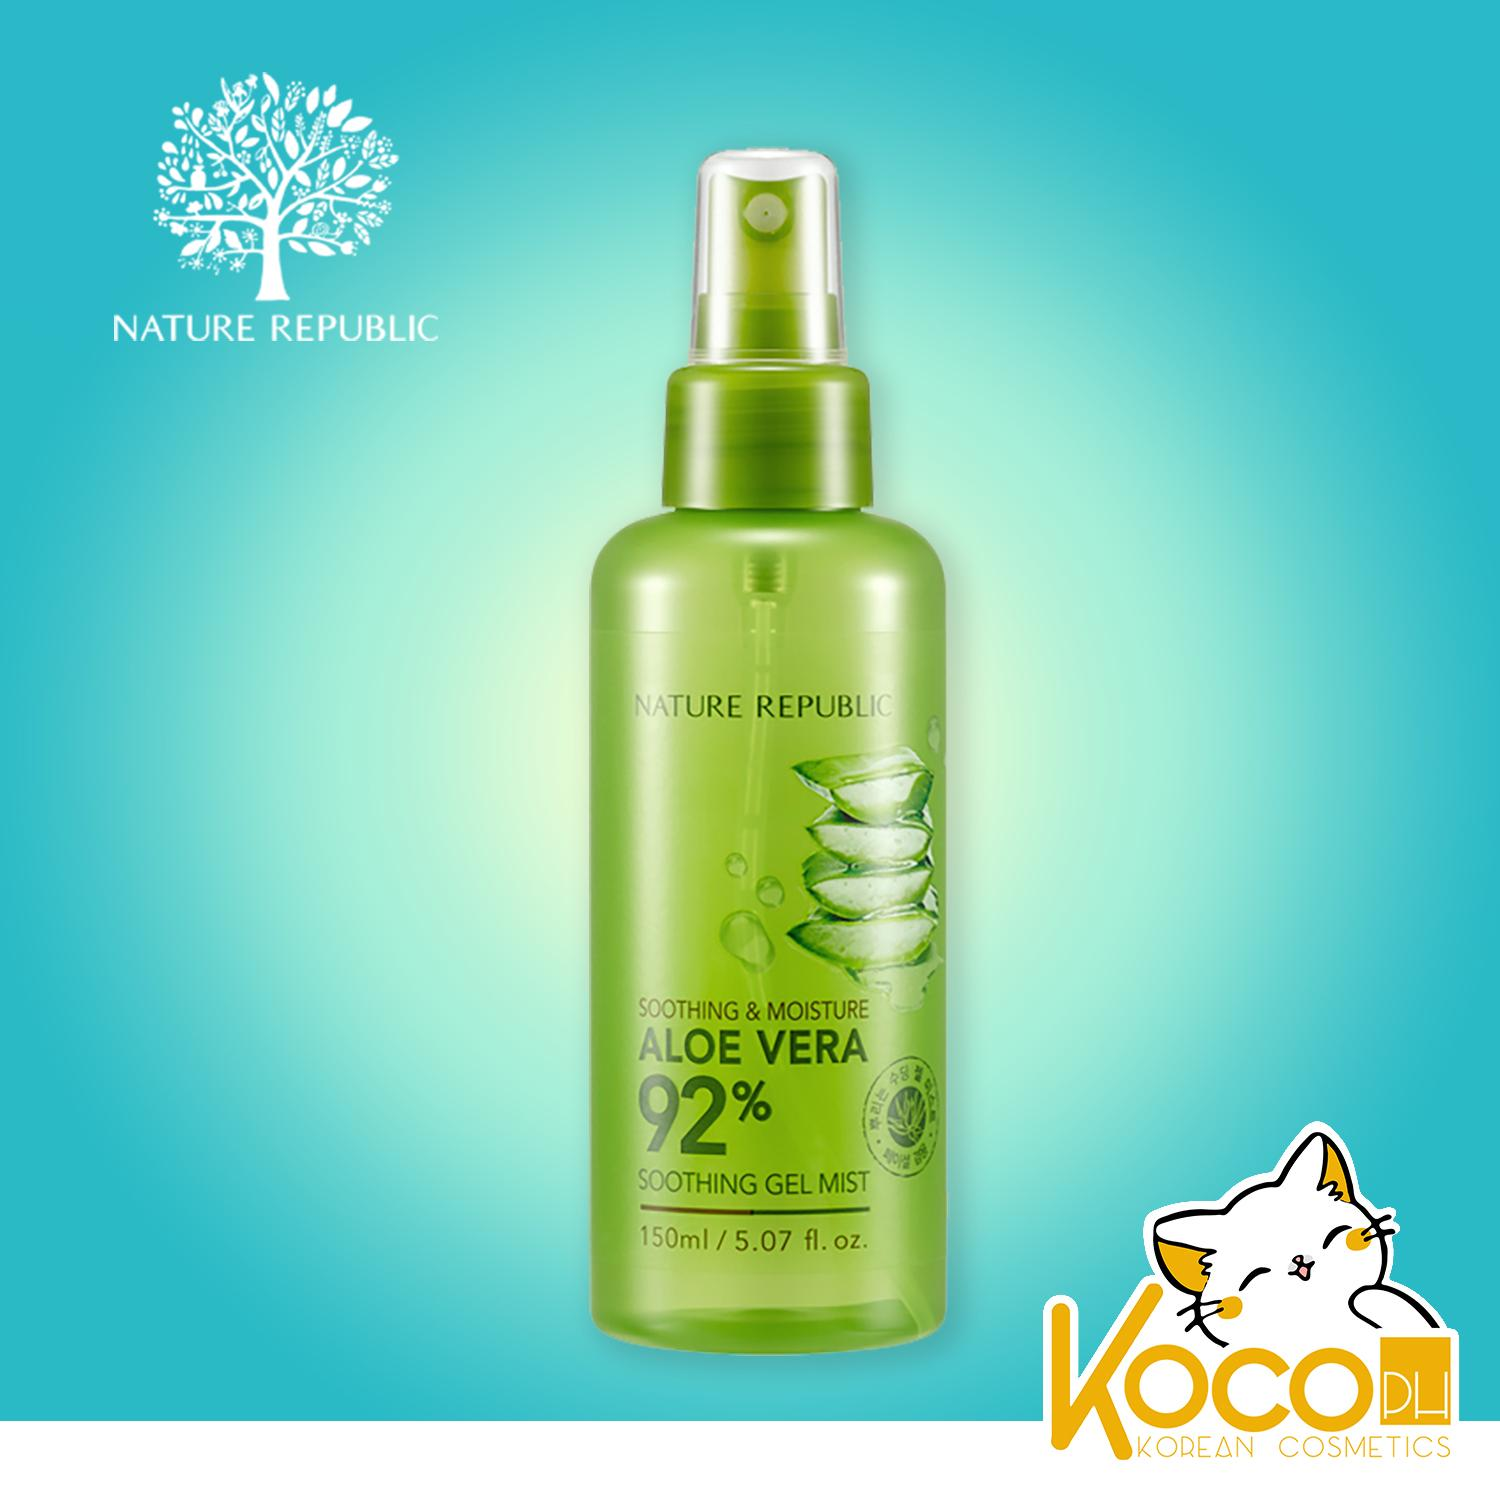 Authentic Nature Republic - Soothing And Moisture Aloe Vera 92% Soothing Gel Mist By Koco Ph.